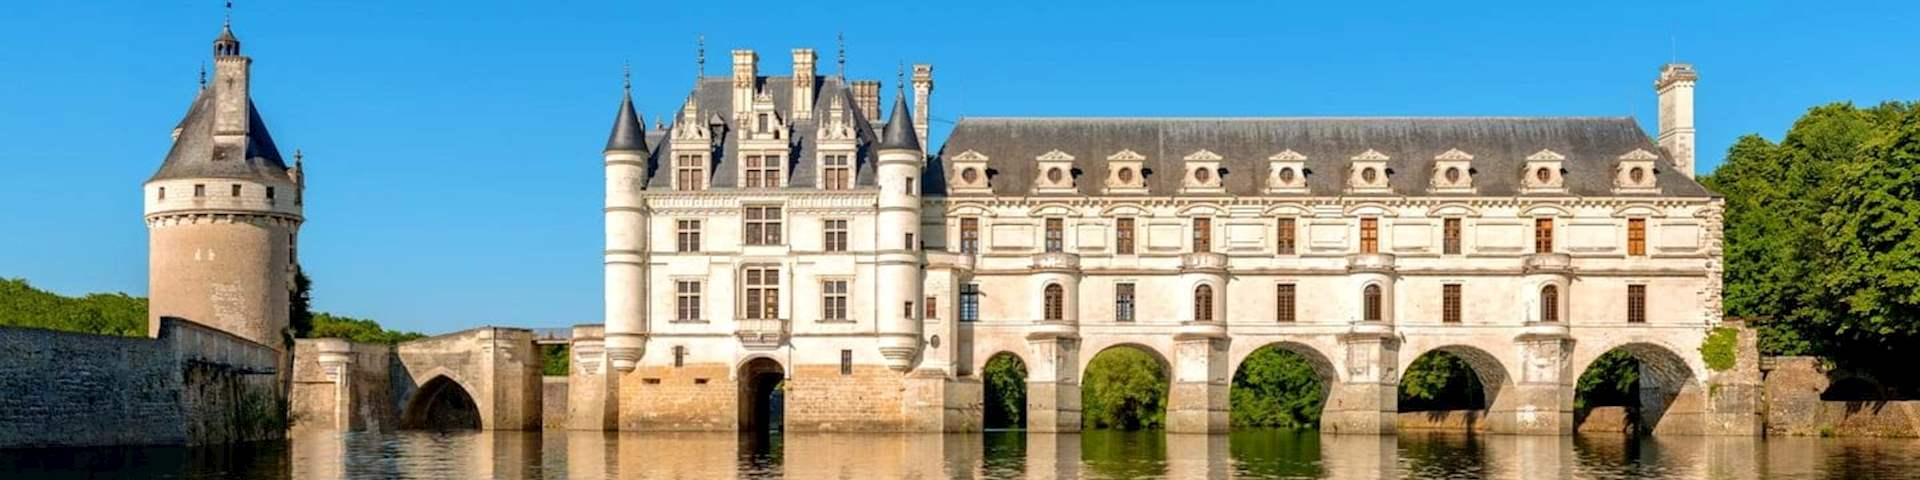 Loire Valley Castles Tours